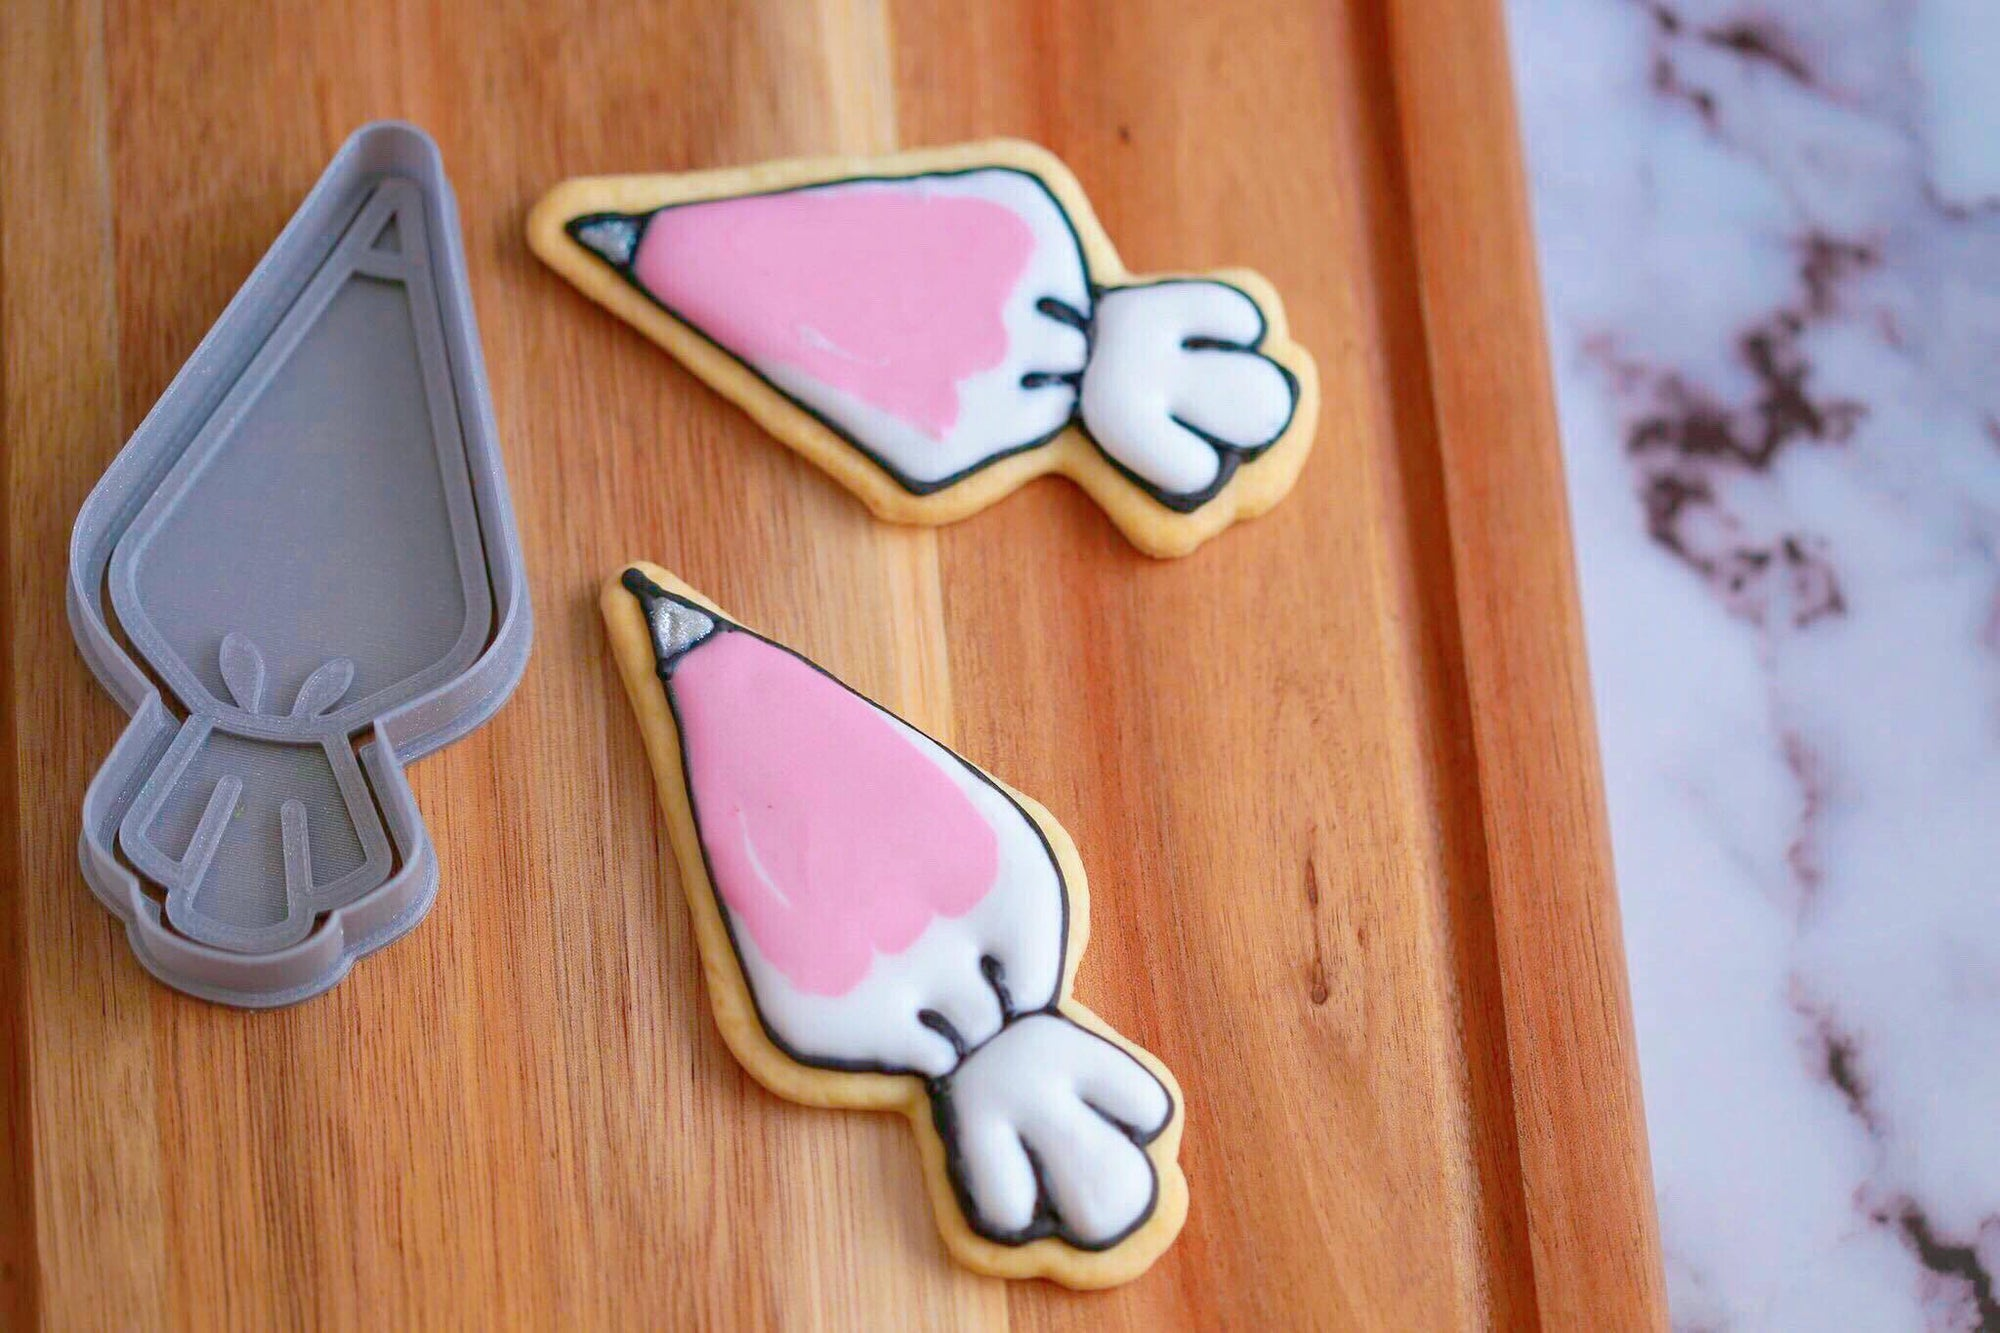 Piping Bag Cookie Cutter - Dolce3D